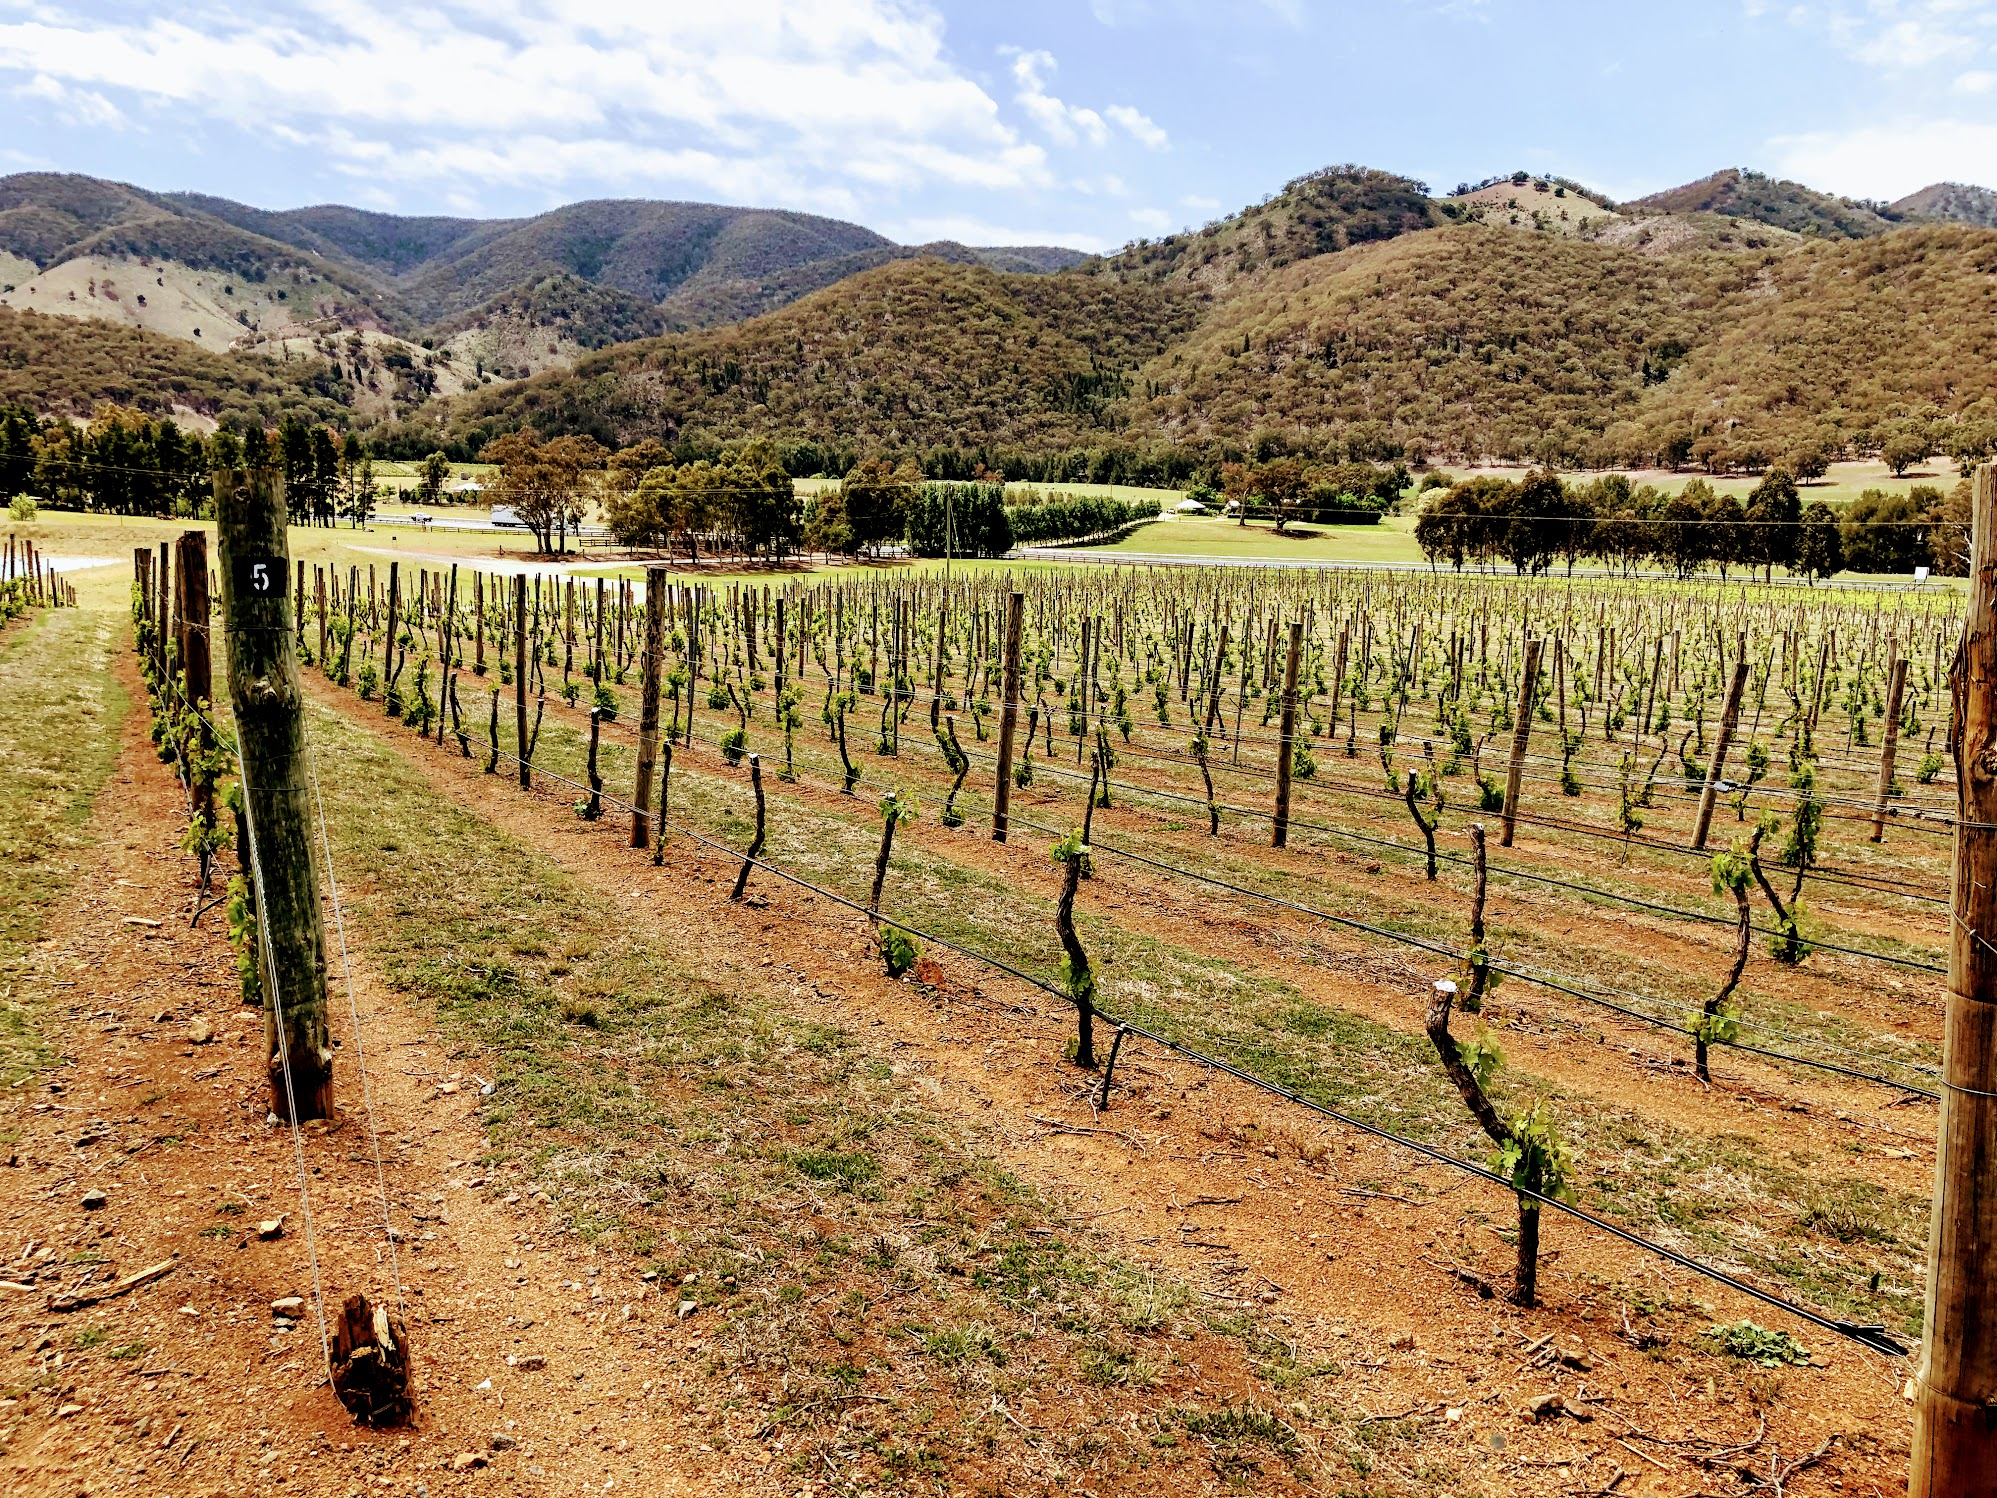 Logan wine vines in Australia